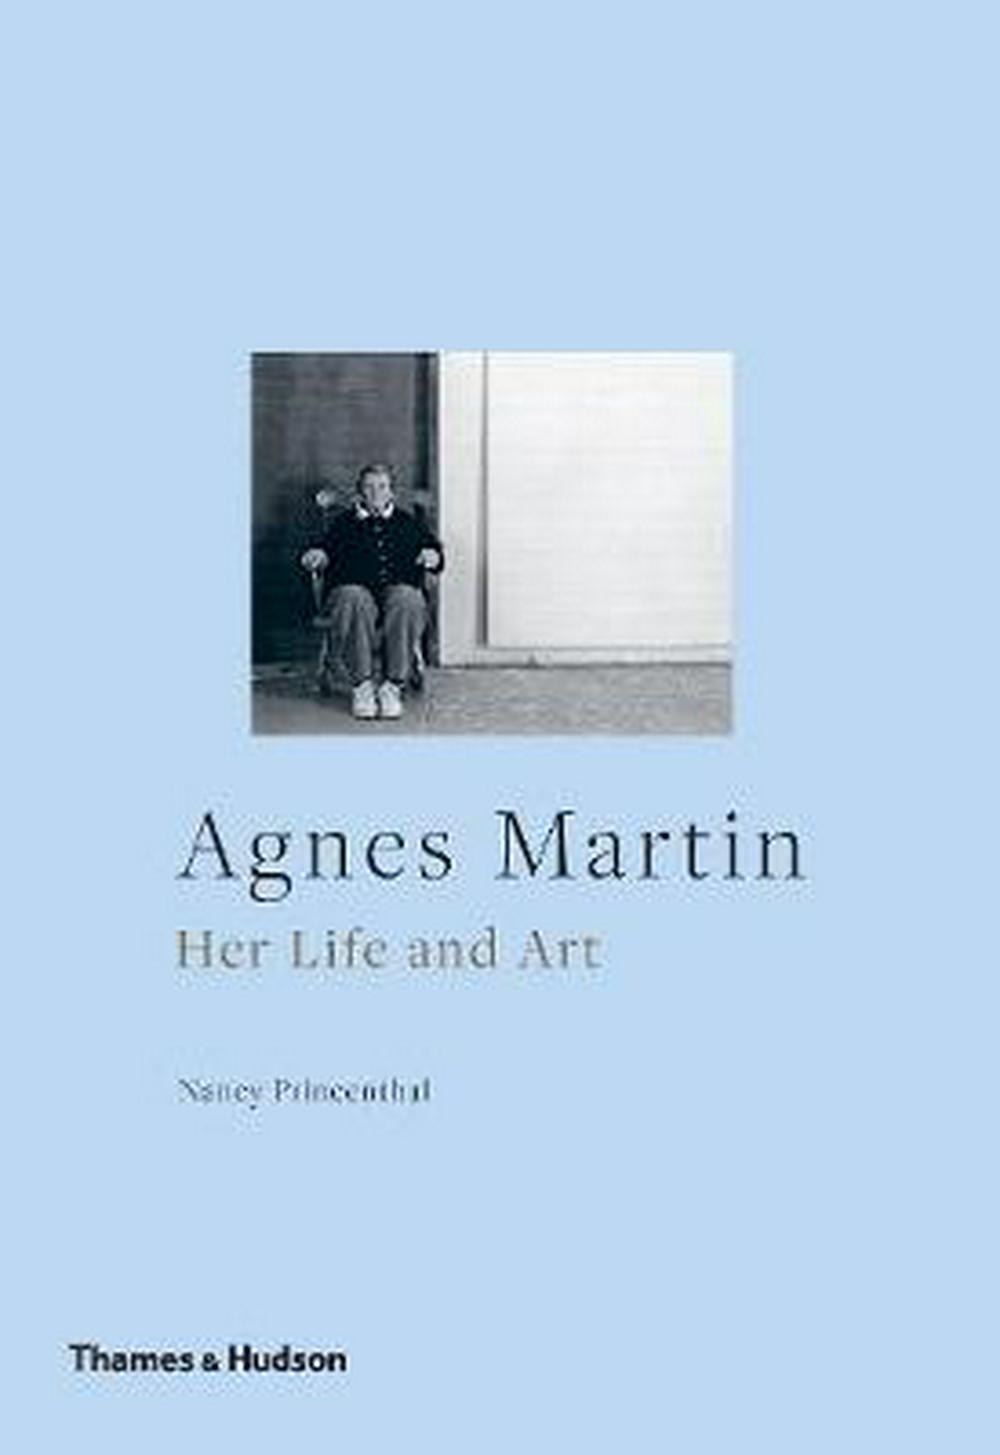 Agnes MartinHer Life and Art by Nancy Princenthal, ISBN: 9780500294550